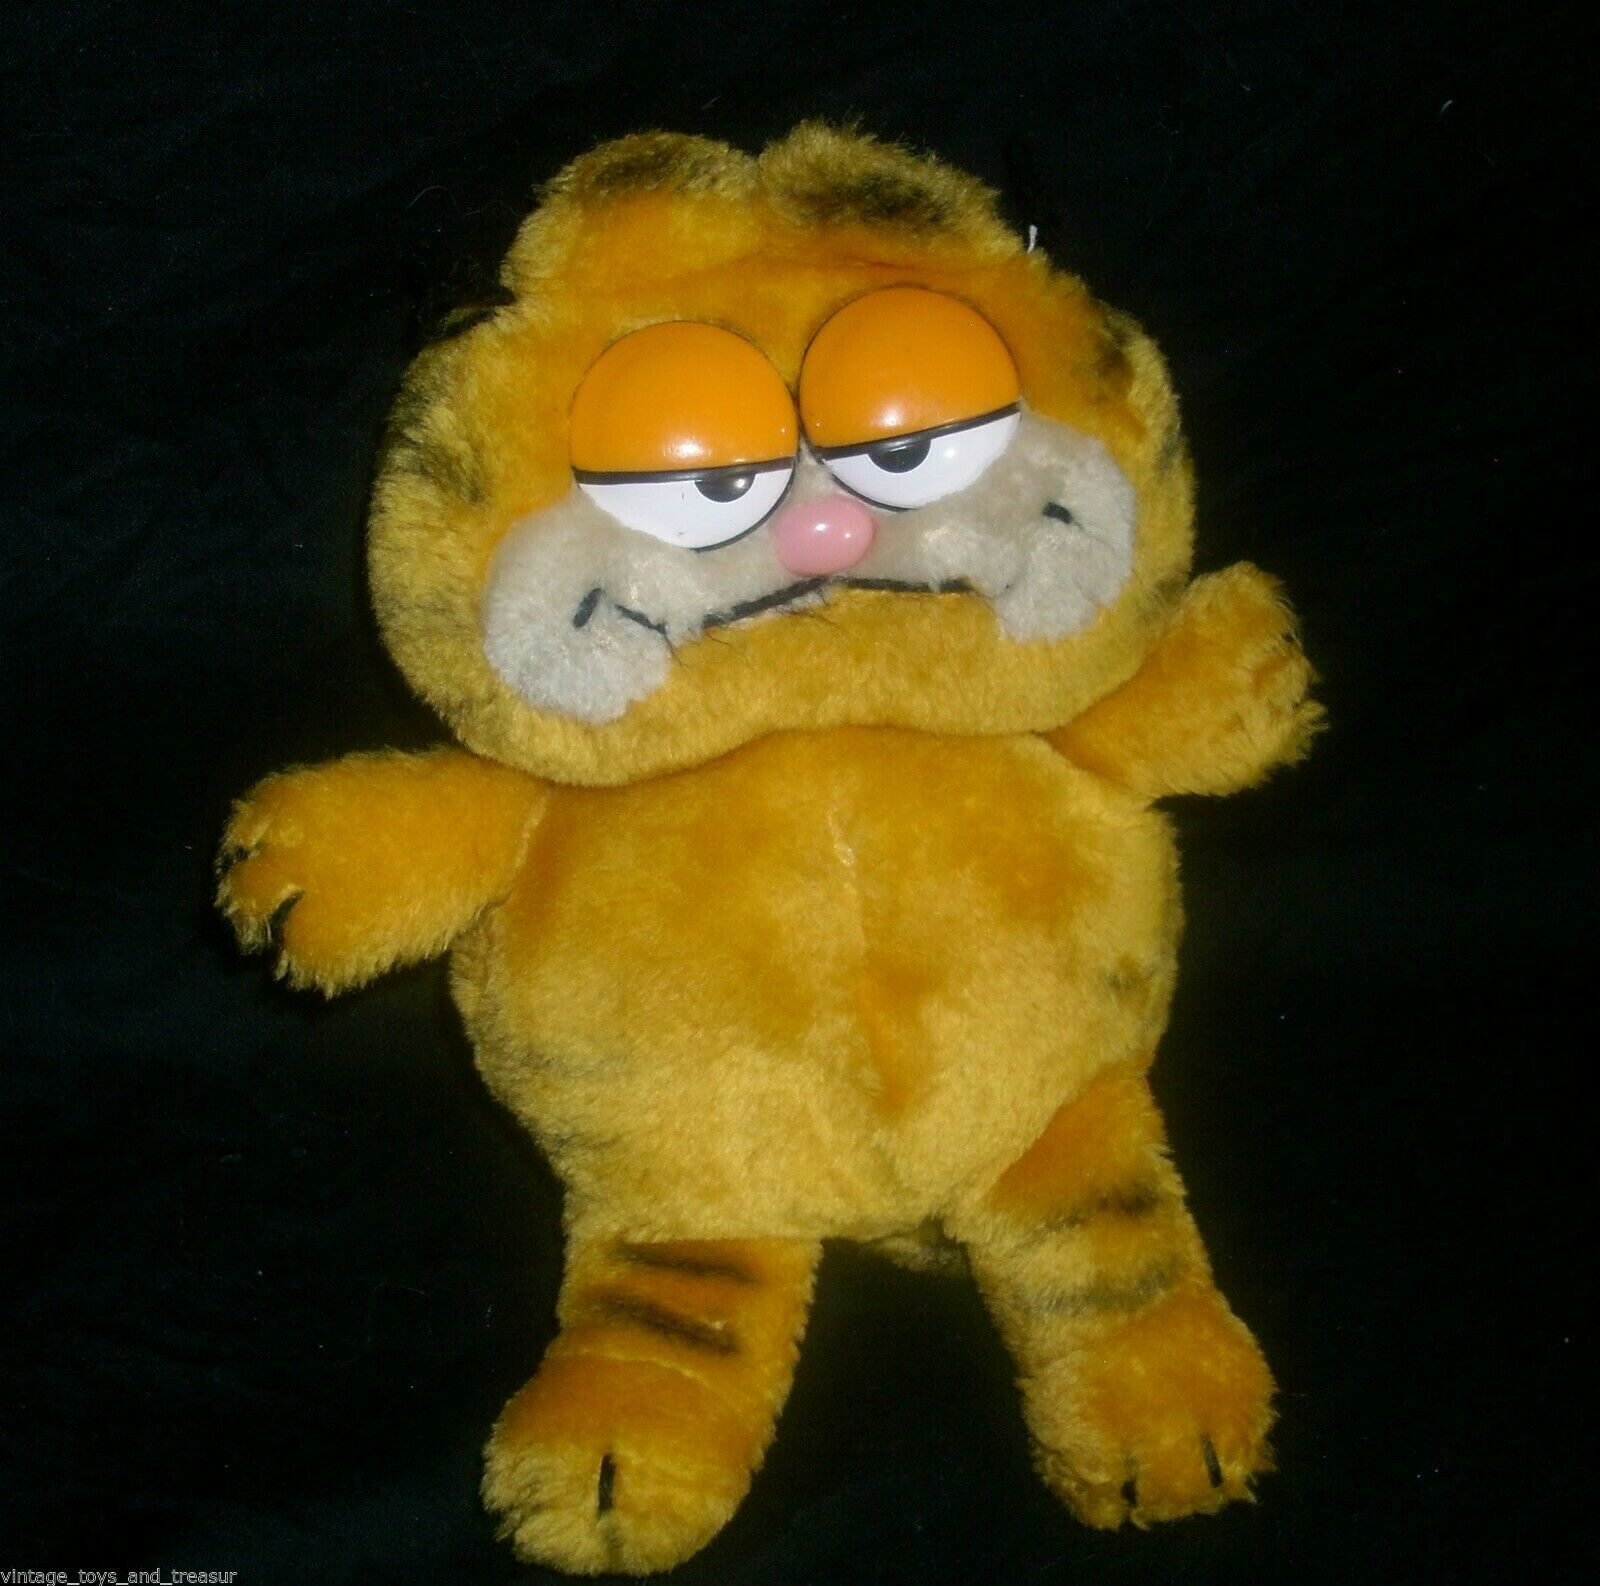 "Primary image for 9"" VINTAGE 1981 DAKIN GARFIELD ORANGE STUFFED ANIMAL PLUSH CAT TOY LOVEY DOLL"